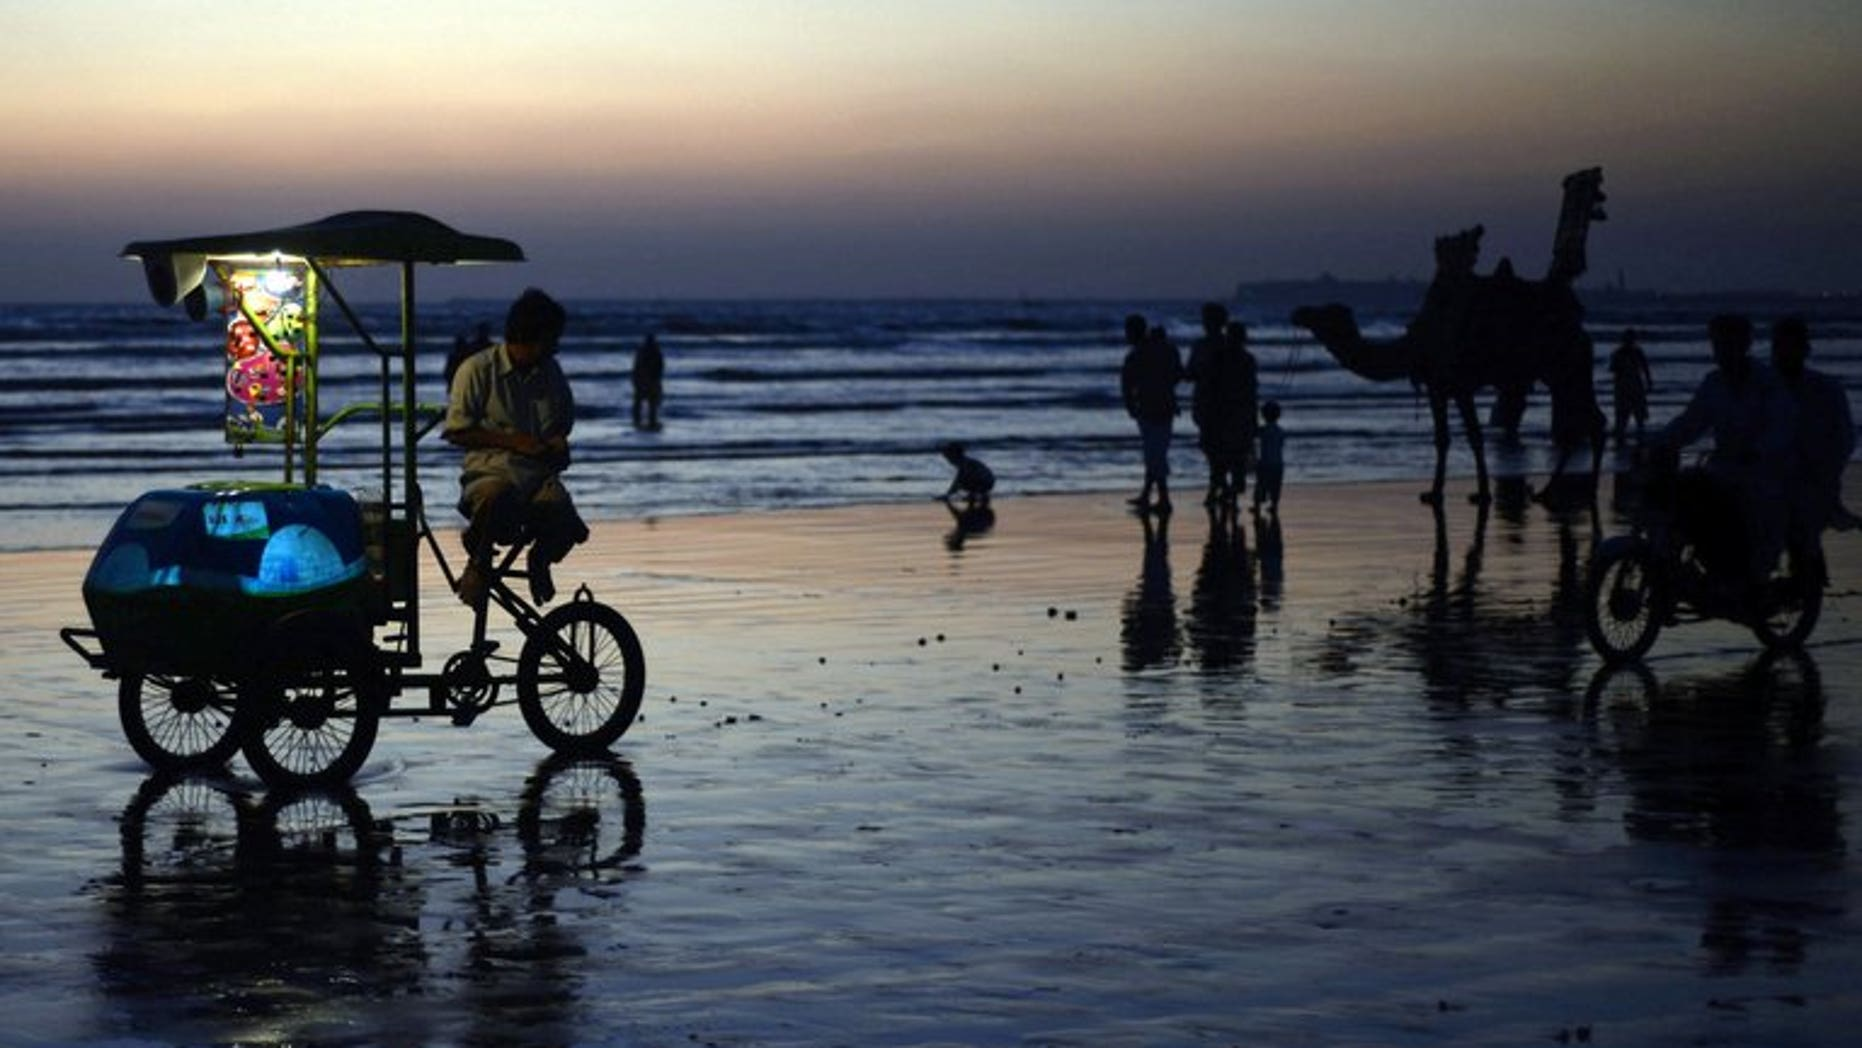 In this file photo, people are seen gathering on Sea View Beach during sunset in Karachi, on November 5, 2012. A charismatic Muslim preacher criticised for giving out babies to childless couples live on prime-time Pakistani television denies he is crudely seeking top ratings and insists he is spreading charity.